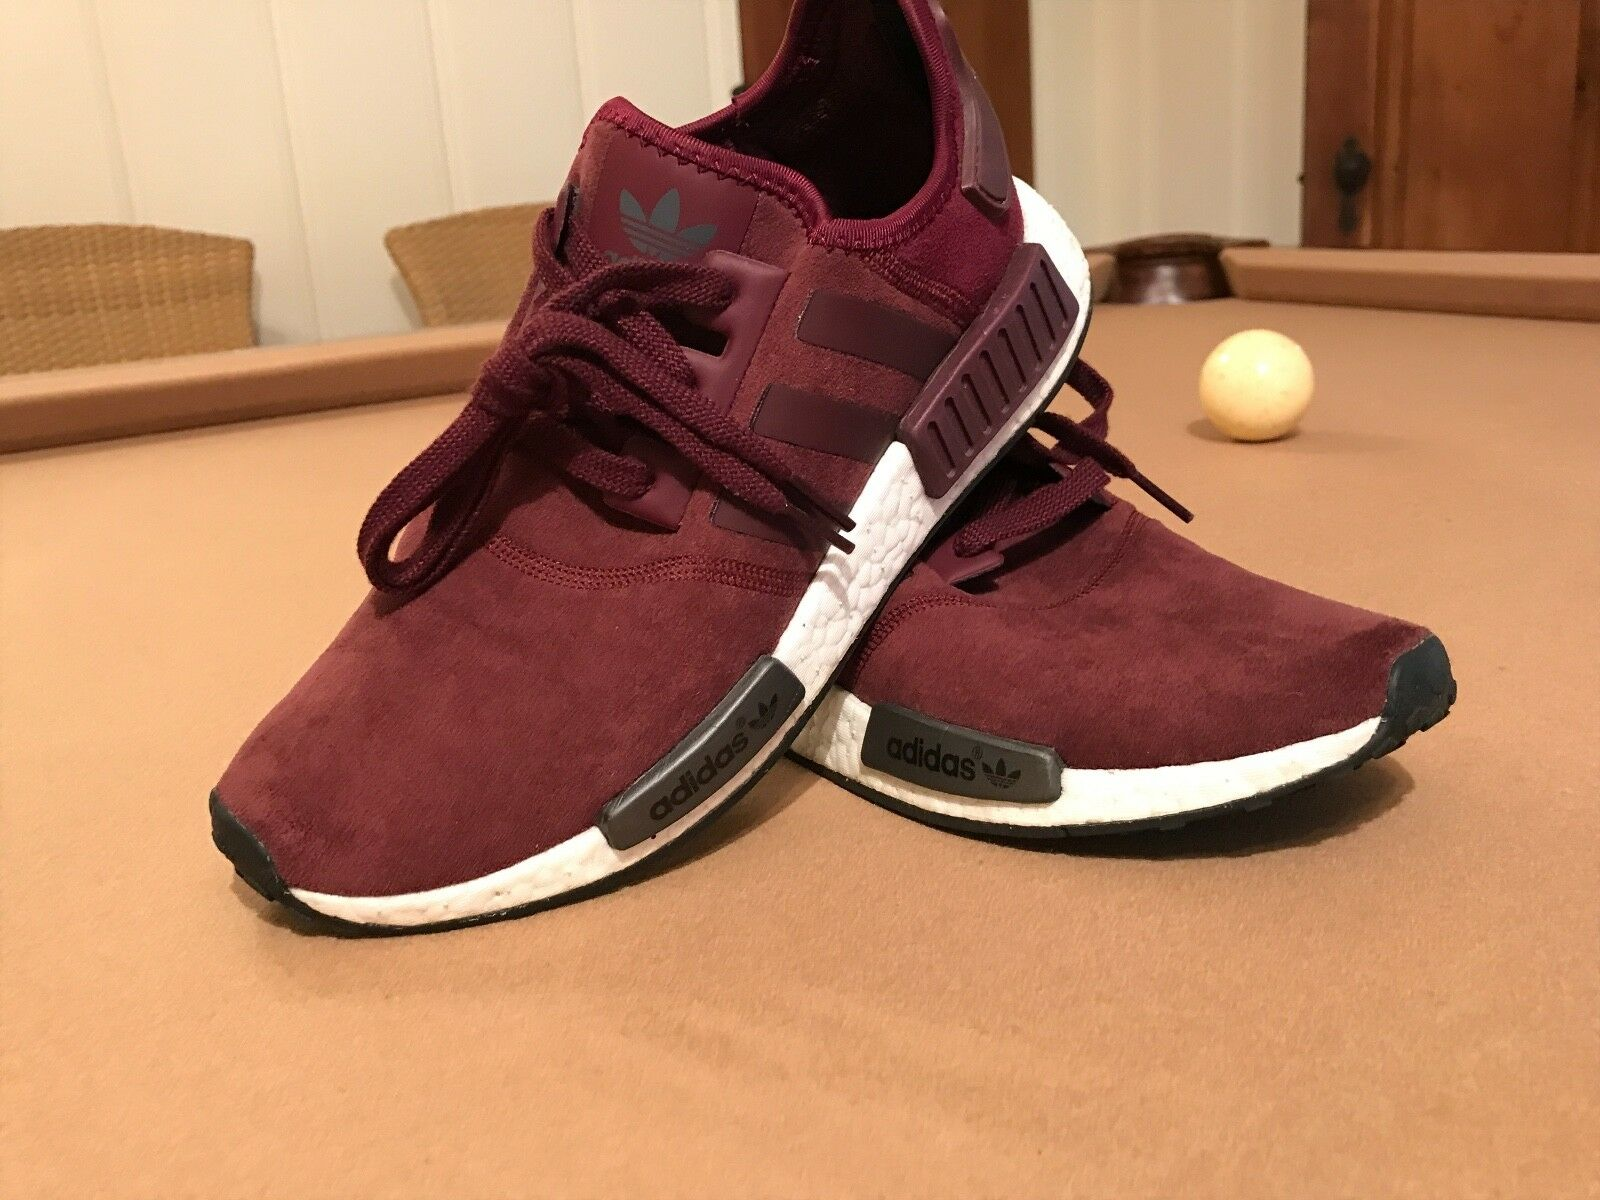 Womens Nmd R1 Burgundy Size 8.5 (Very Rare) Collectors Piece Lightly worn